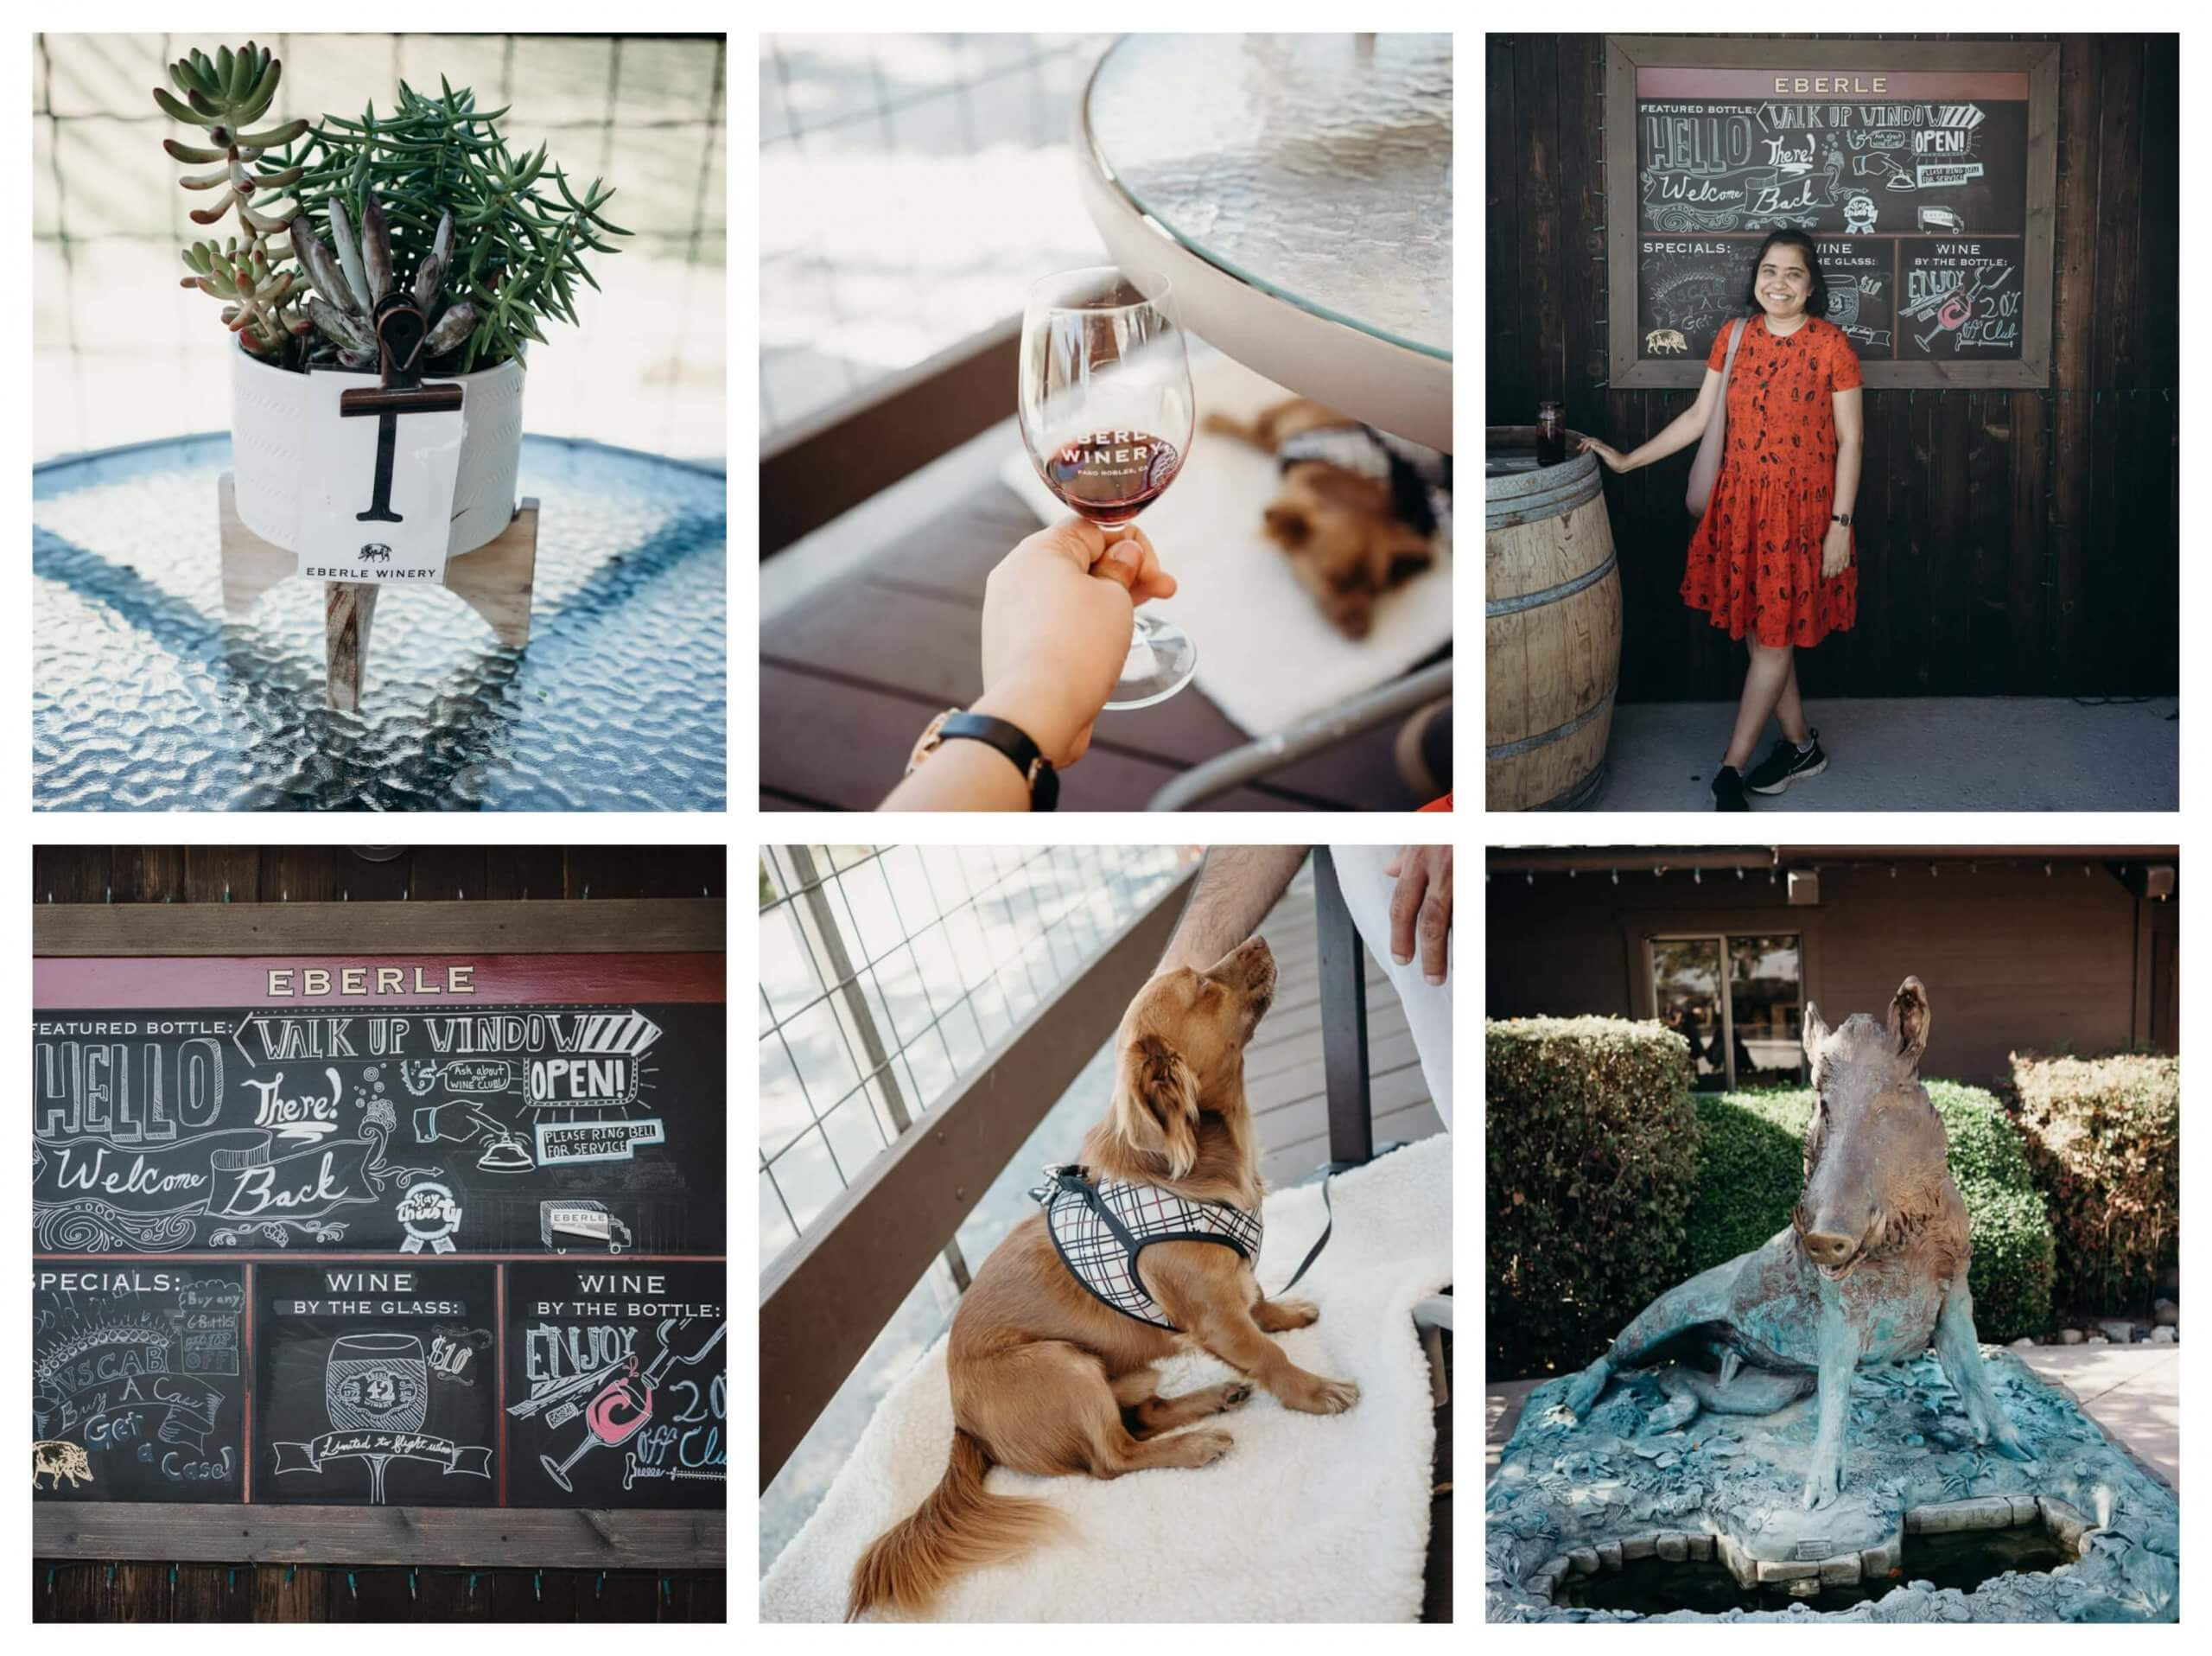 Eberle winery is dog friendly and has a winery caves tour